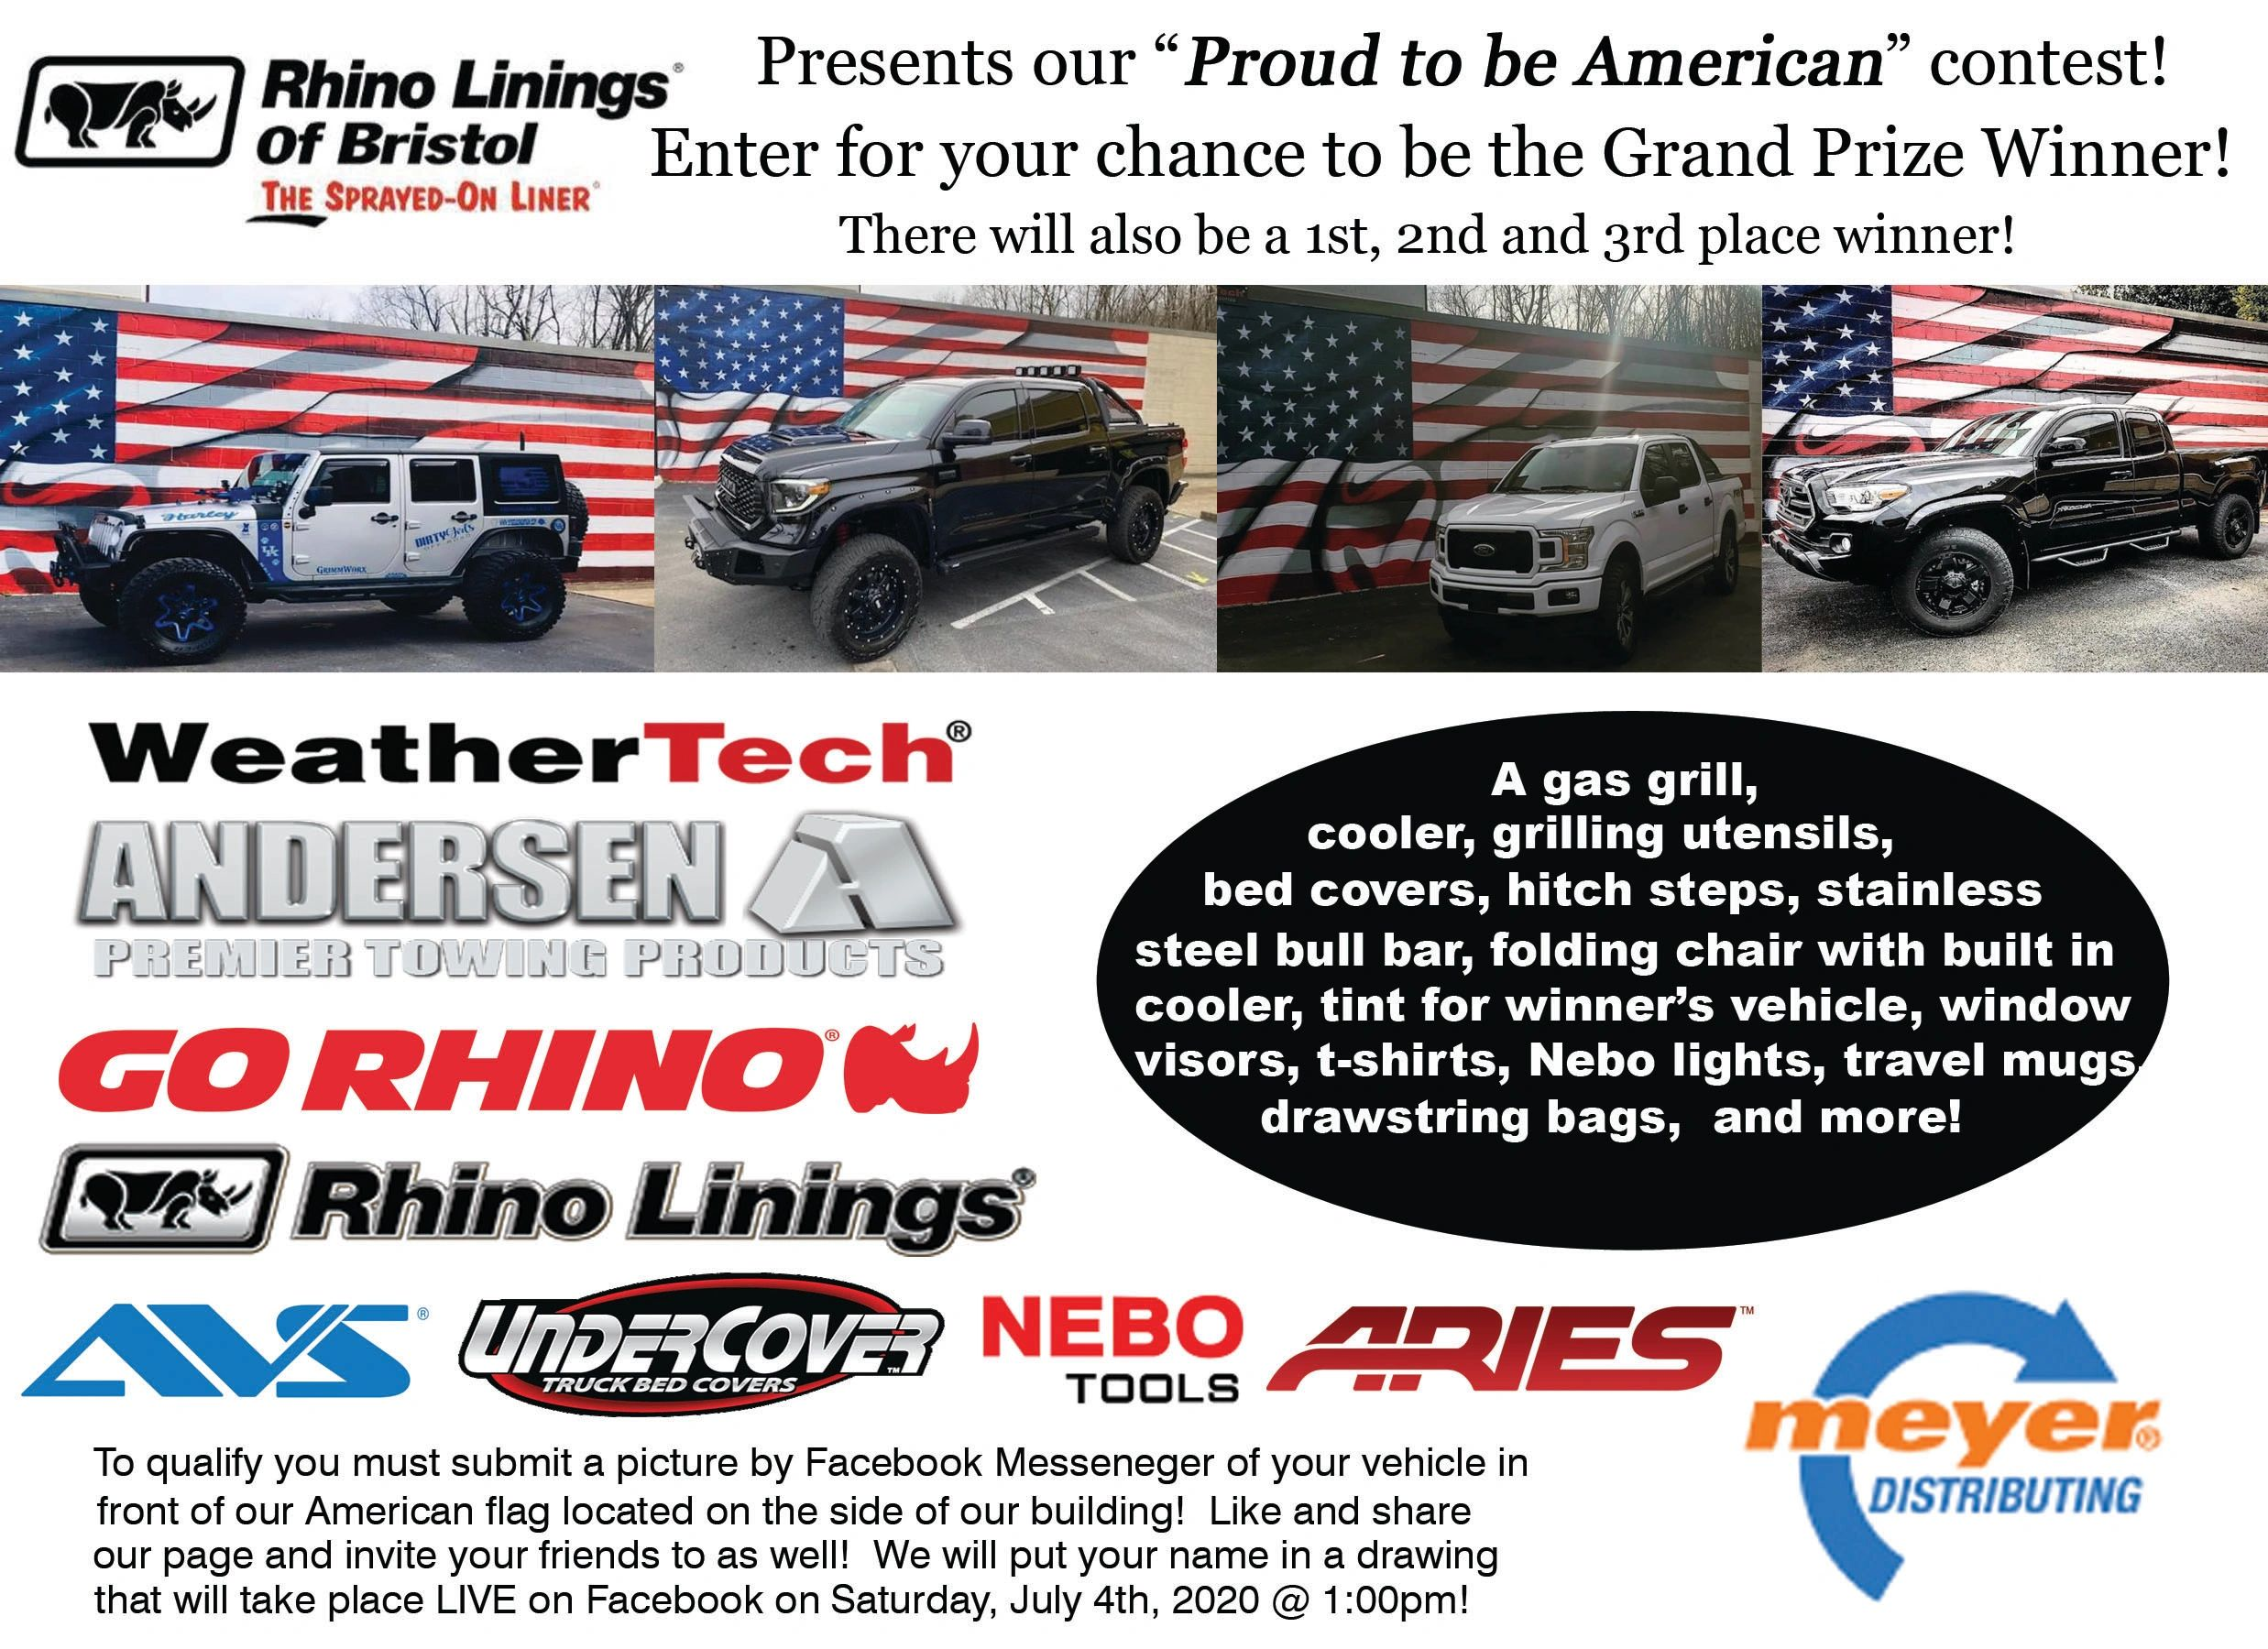 Proud to be an American, July 4th, Contest, Rhino Linings of Bristol, Prizes, Truck Accessories